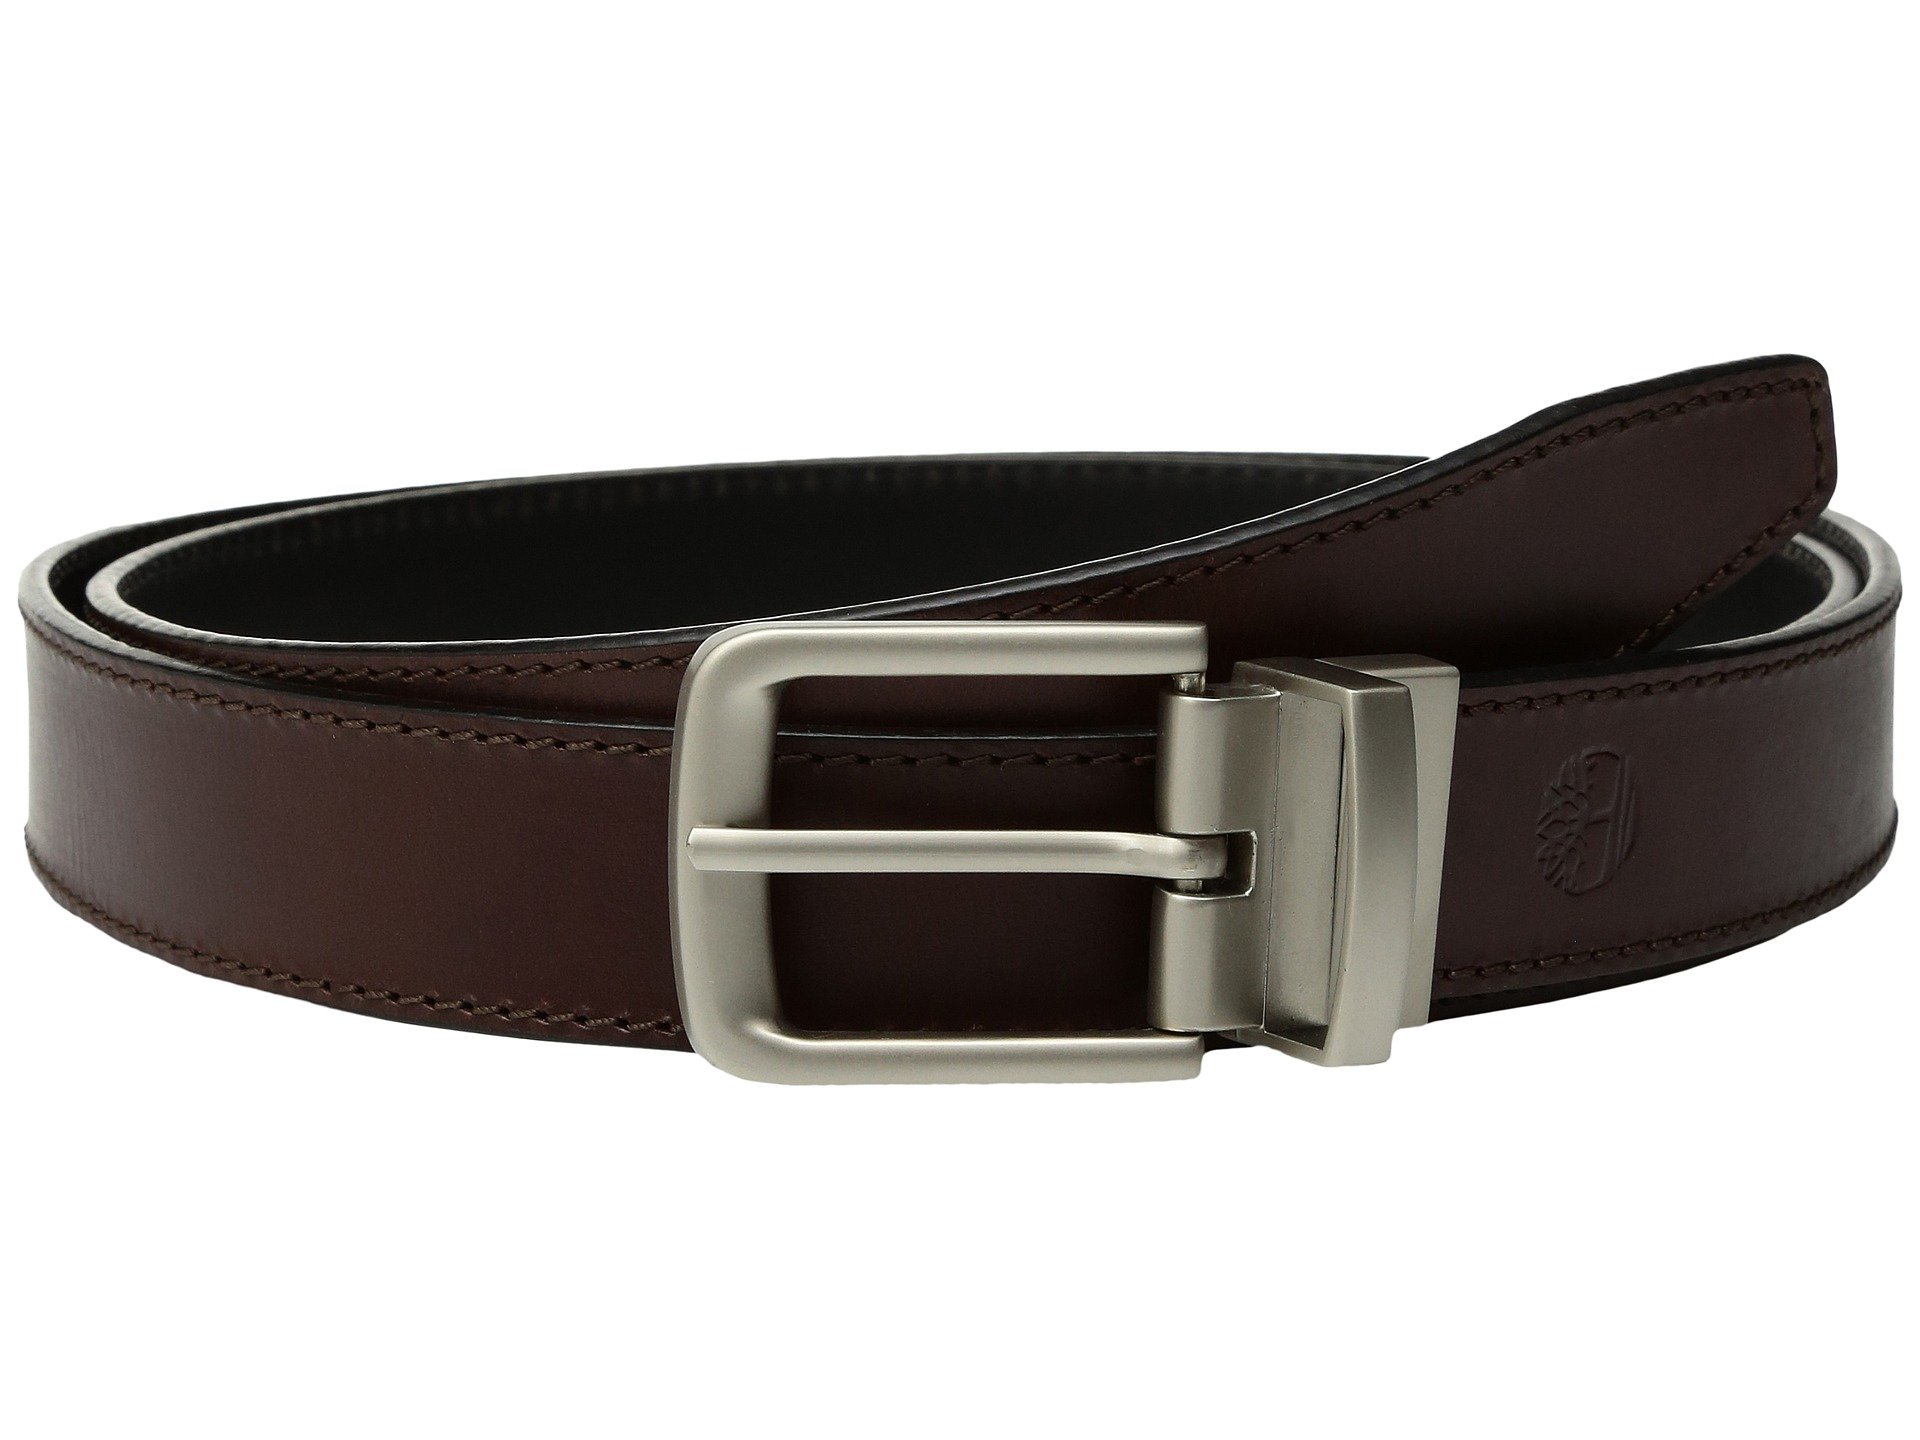 Correa o Cinturon para Hombre Timberland Classic Leather Reversible Belt  + Timberland en VeoyCompro.net